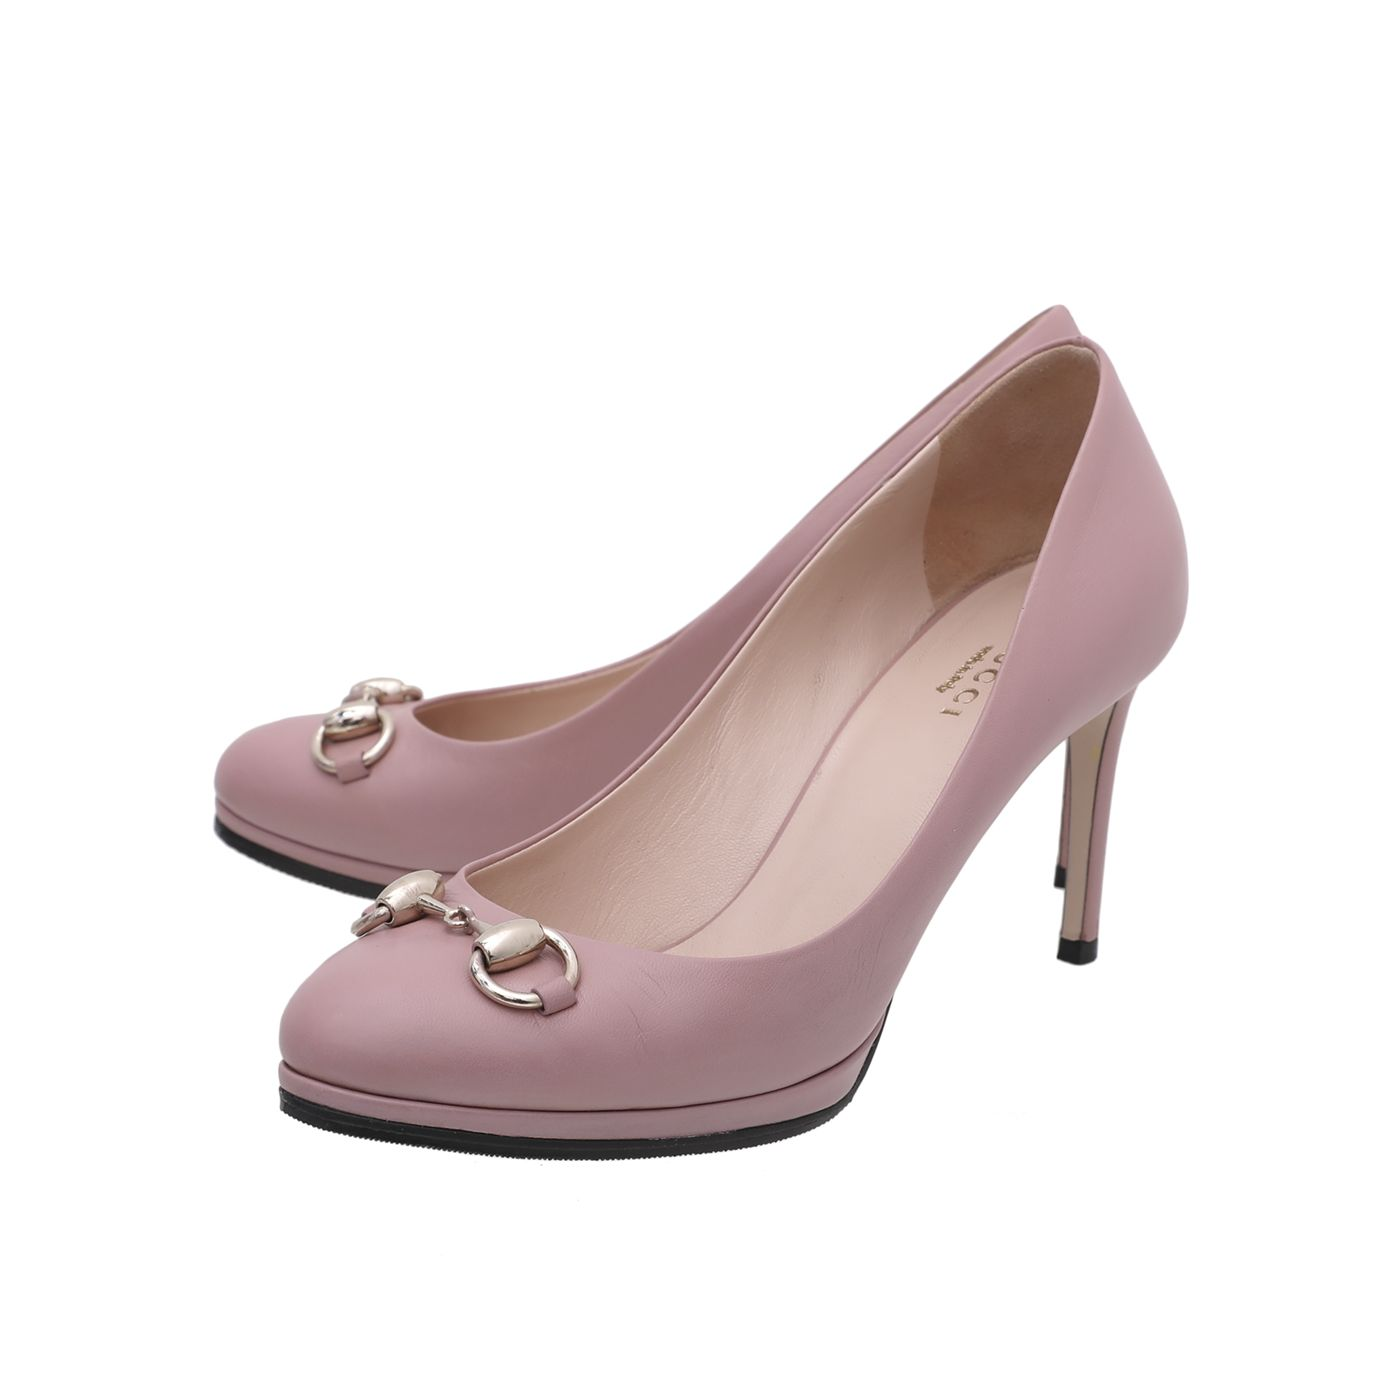 Gucci Dusty Pink Malaga Kid Horsebit Pump 36